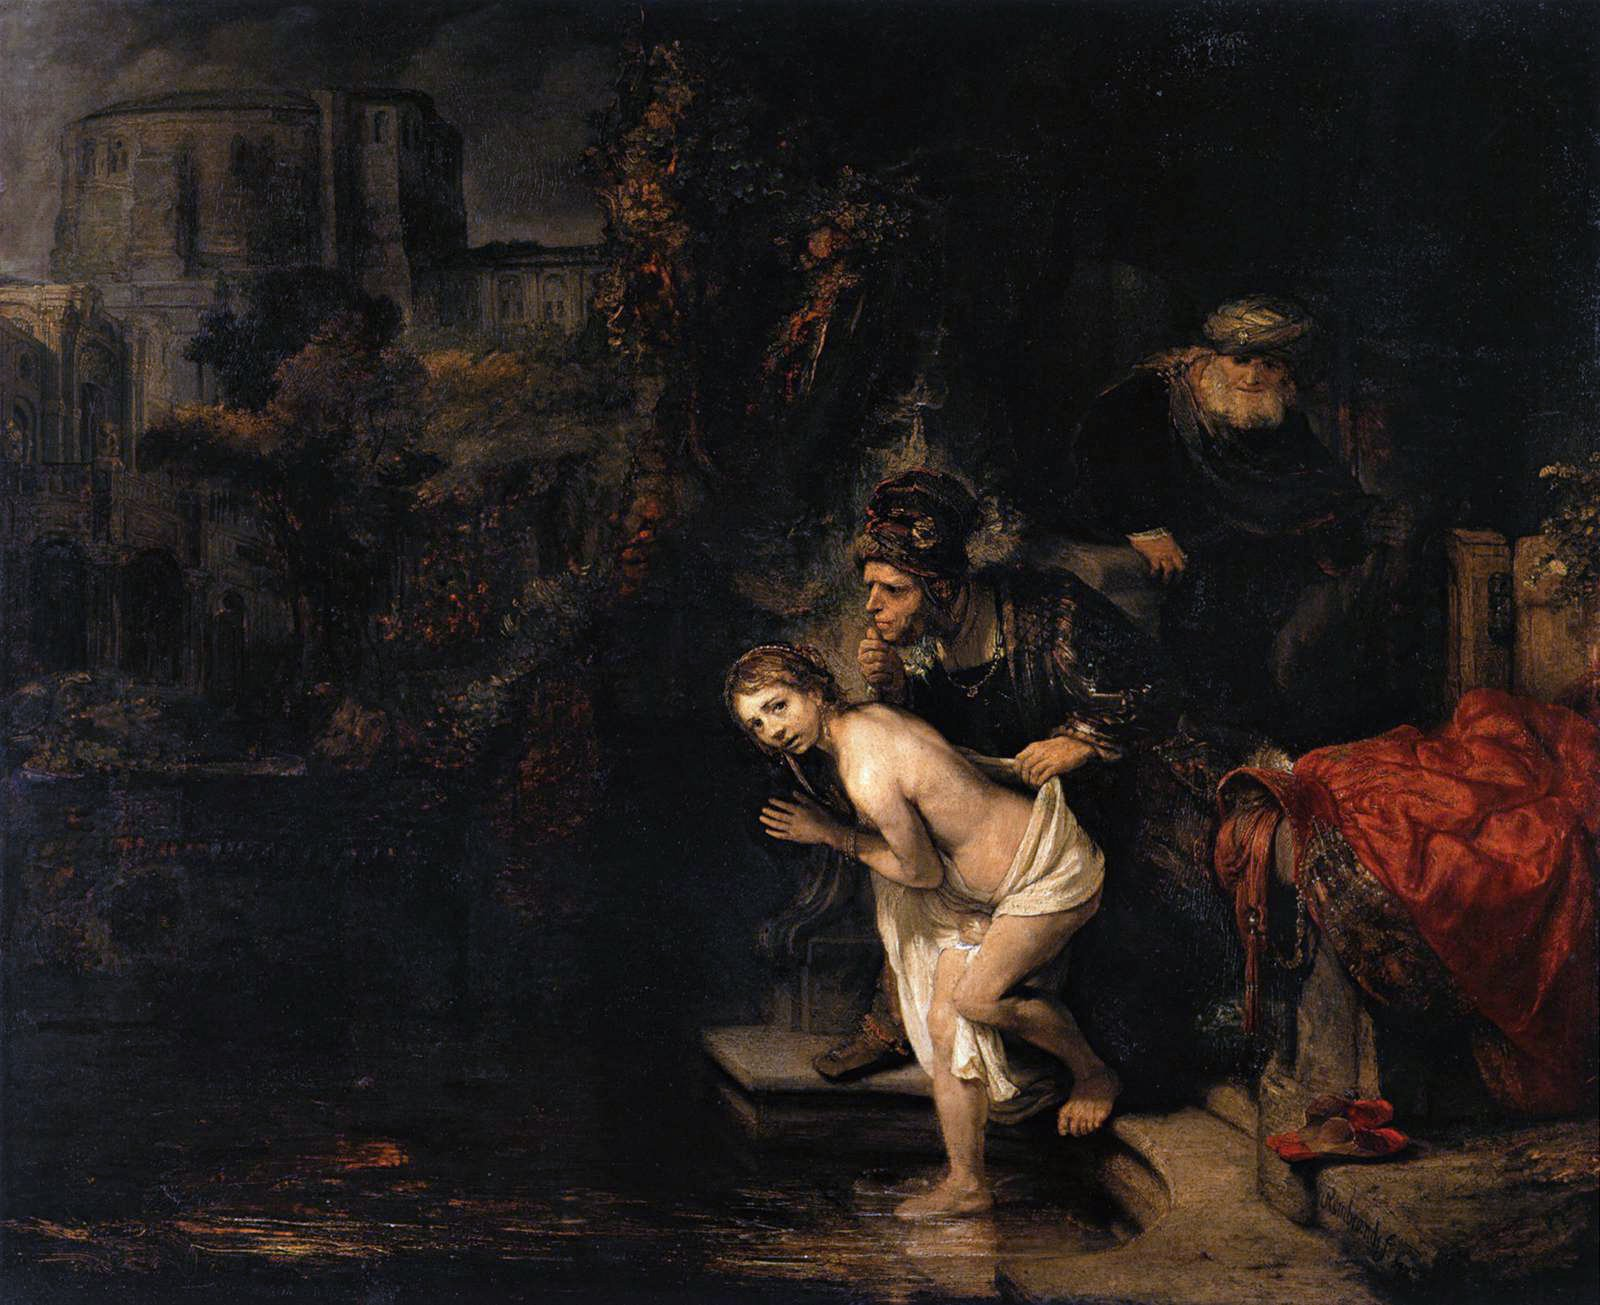 Susanna and the Elders, by Rembrandt, c. 1647. Gemäldegalerie, Berlin, Germany. Via IllustratedPrayer.com